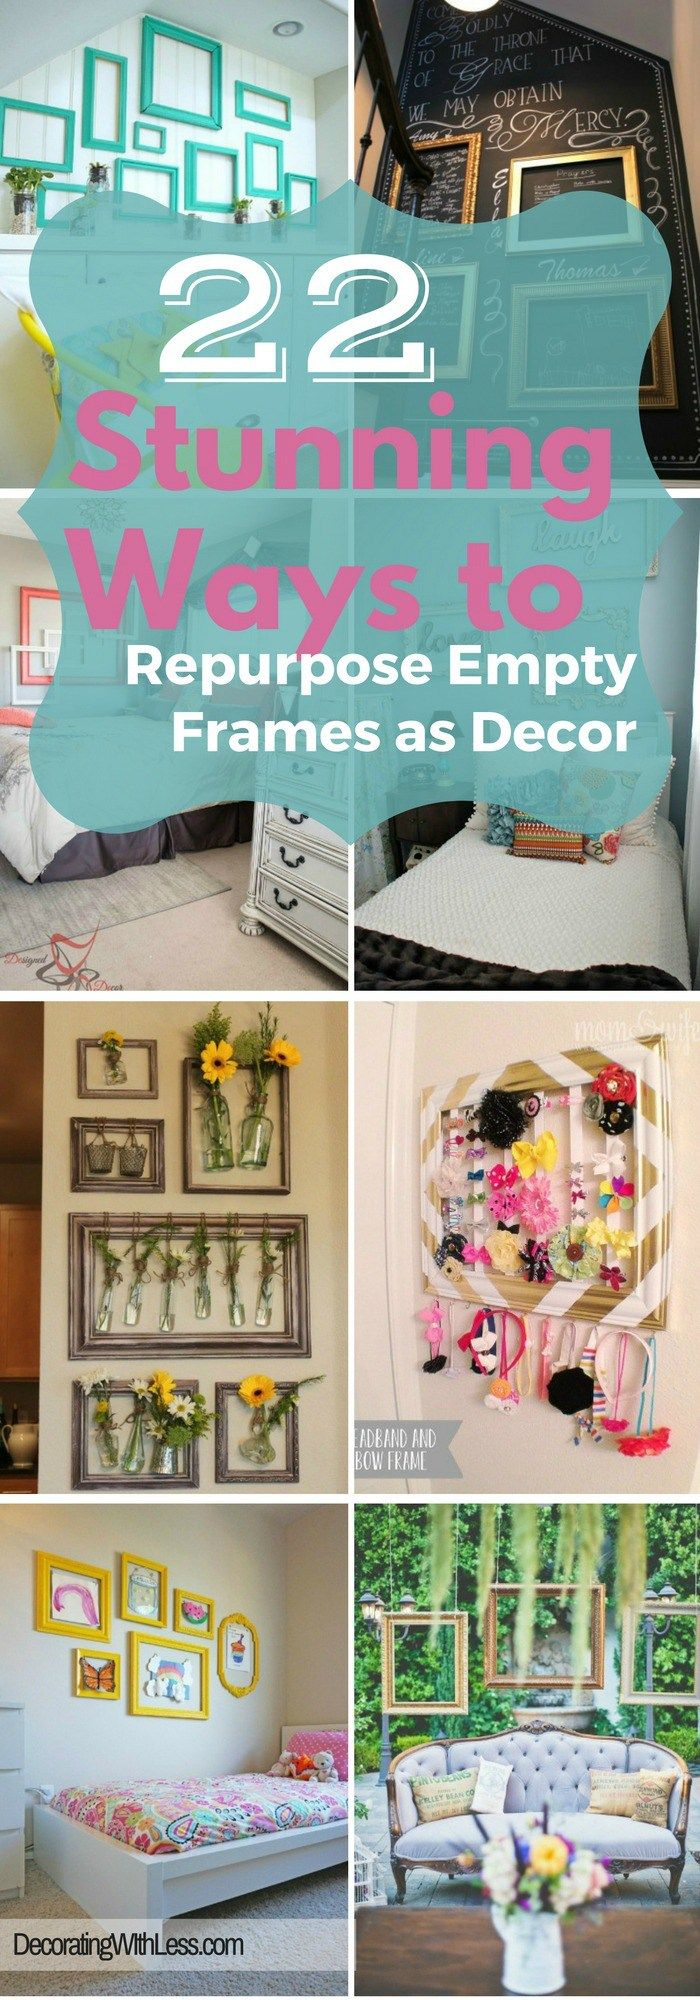 22 Stunning DIY Ways to Repurpose Empty Frames as Decor - Decorating With Less